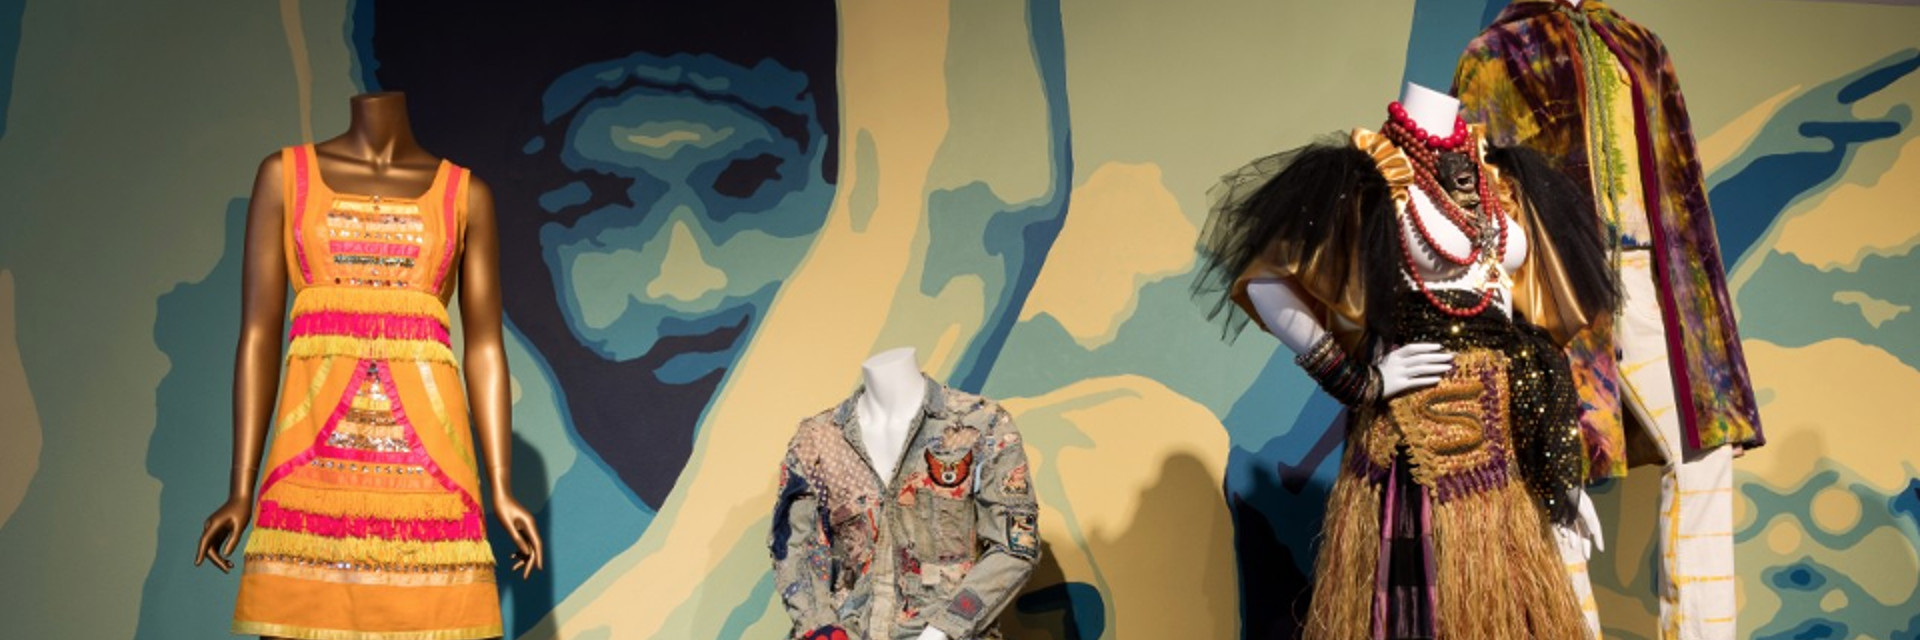 Counter-Couture: Handmade Fashion in an American Counterculture at the Museum of Arts and Design